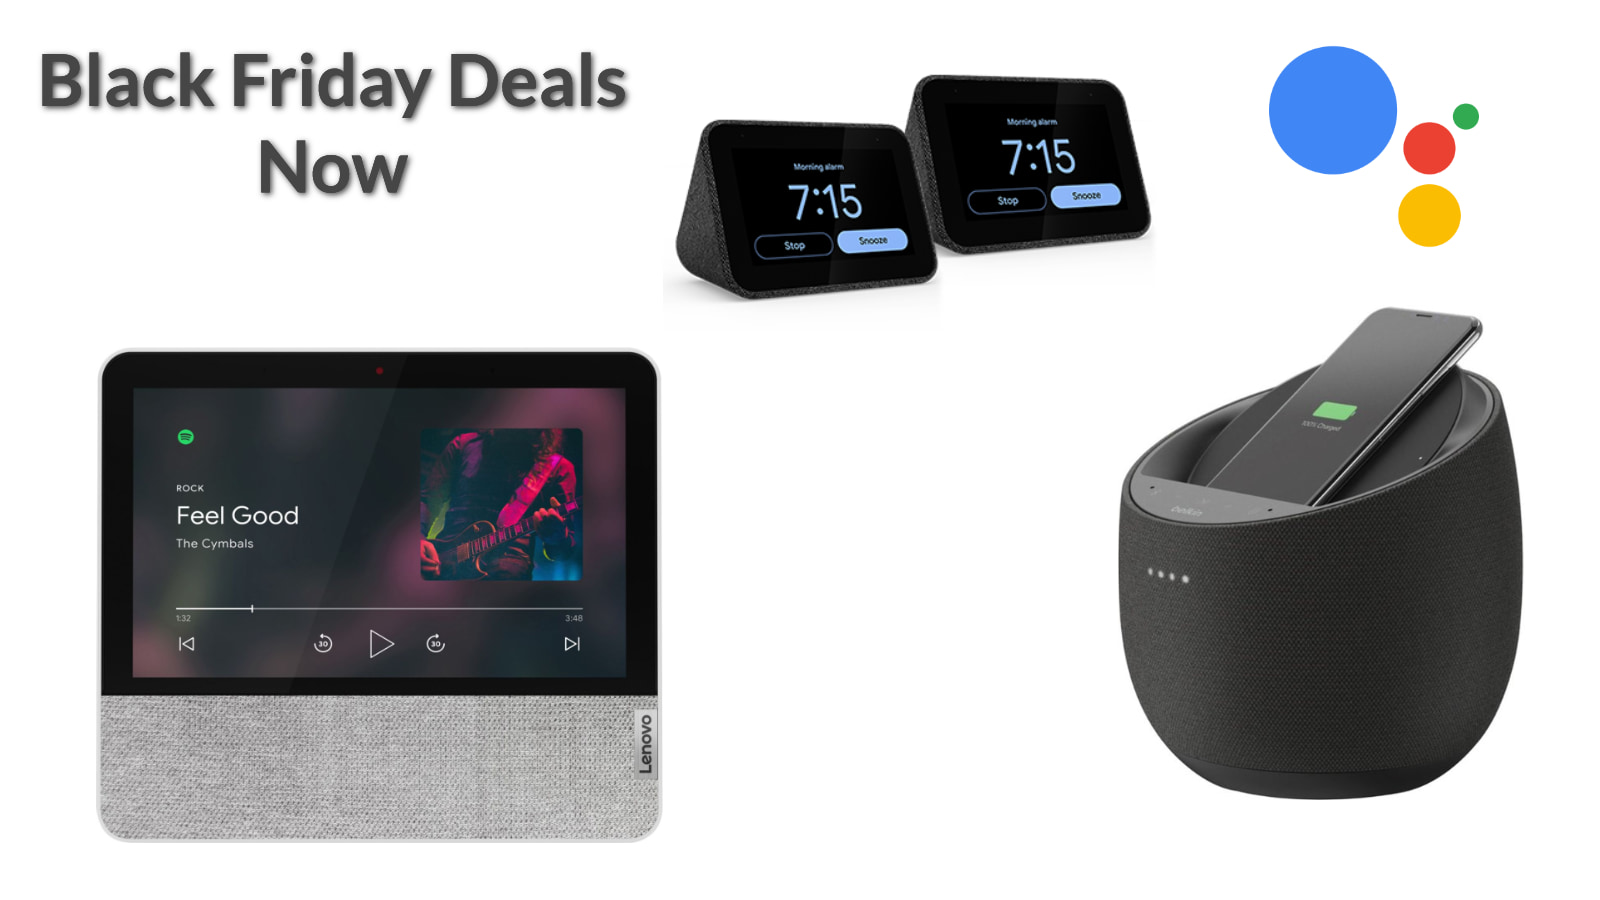 Black Friday: Up to 56% off of these Assistant-enabled Smart Speakers and Displays